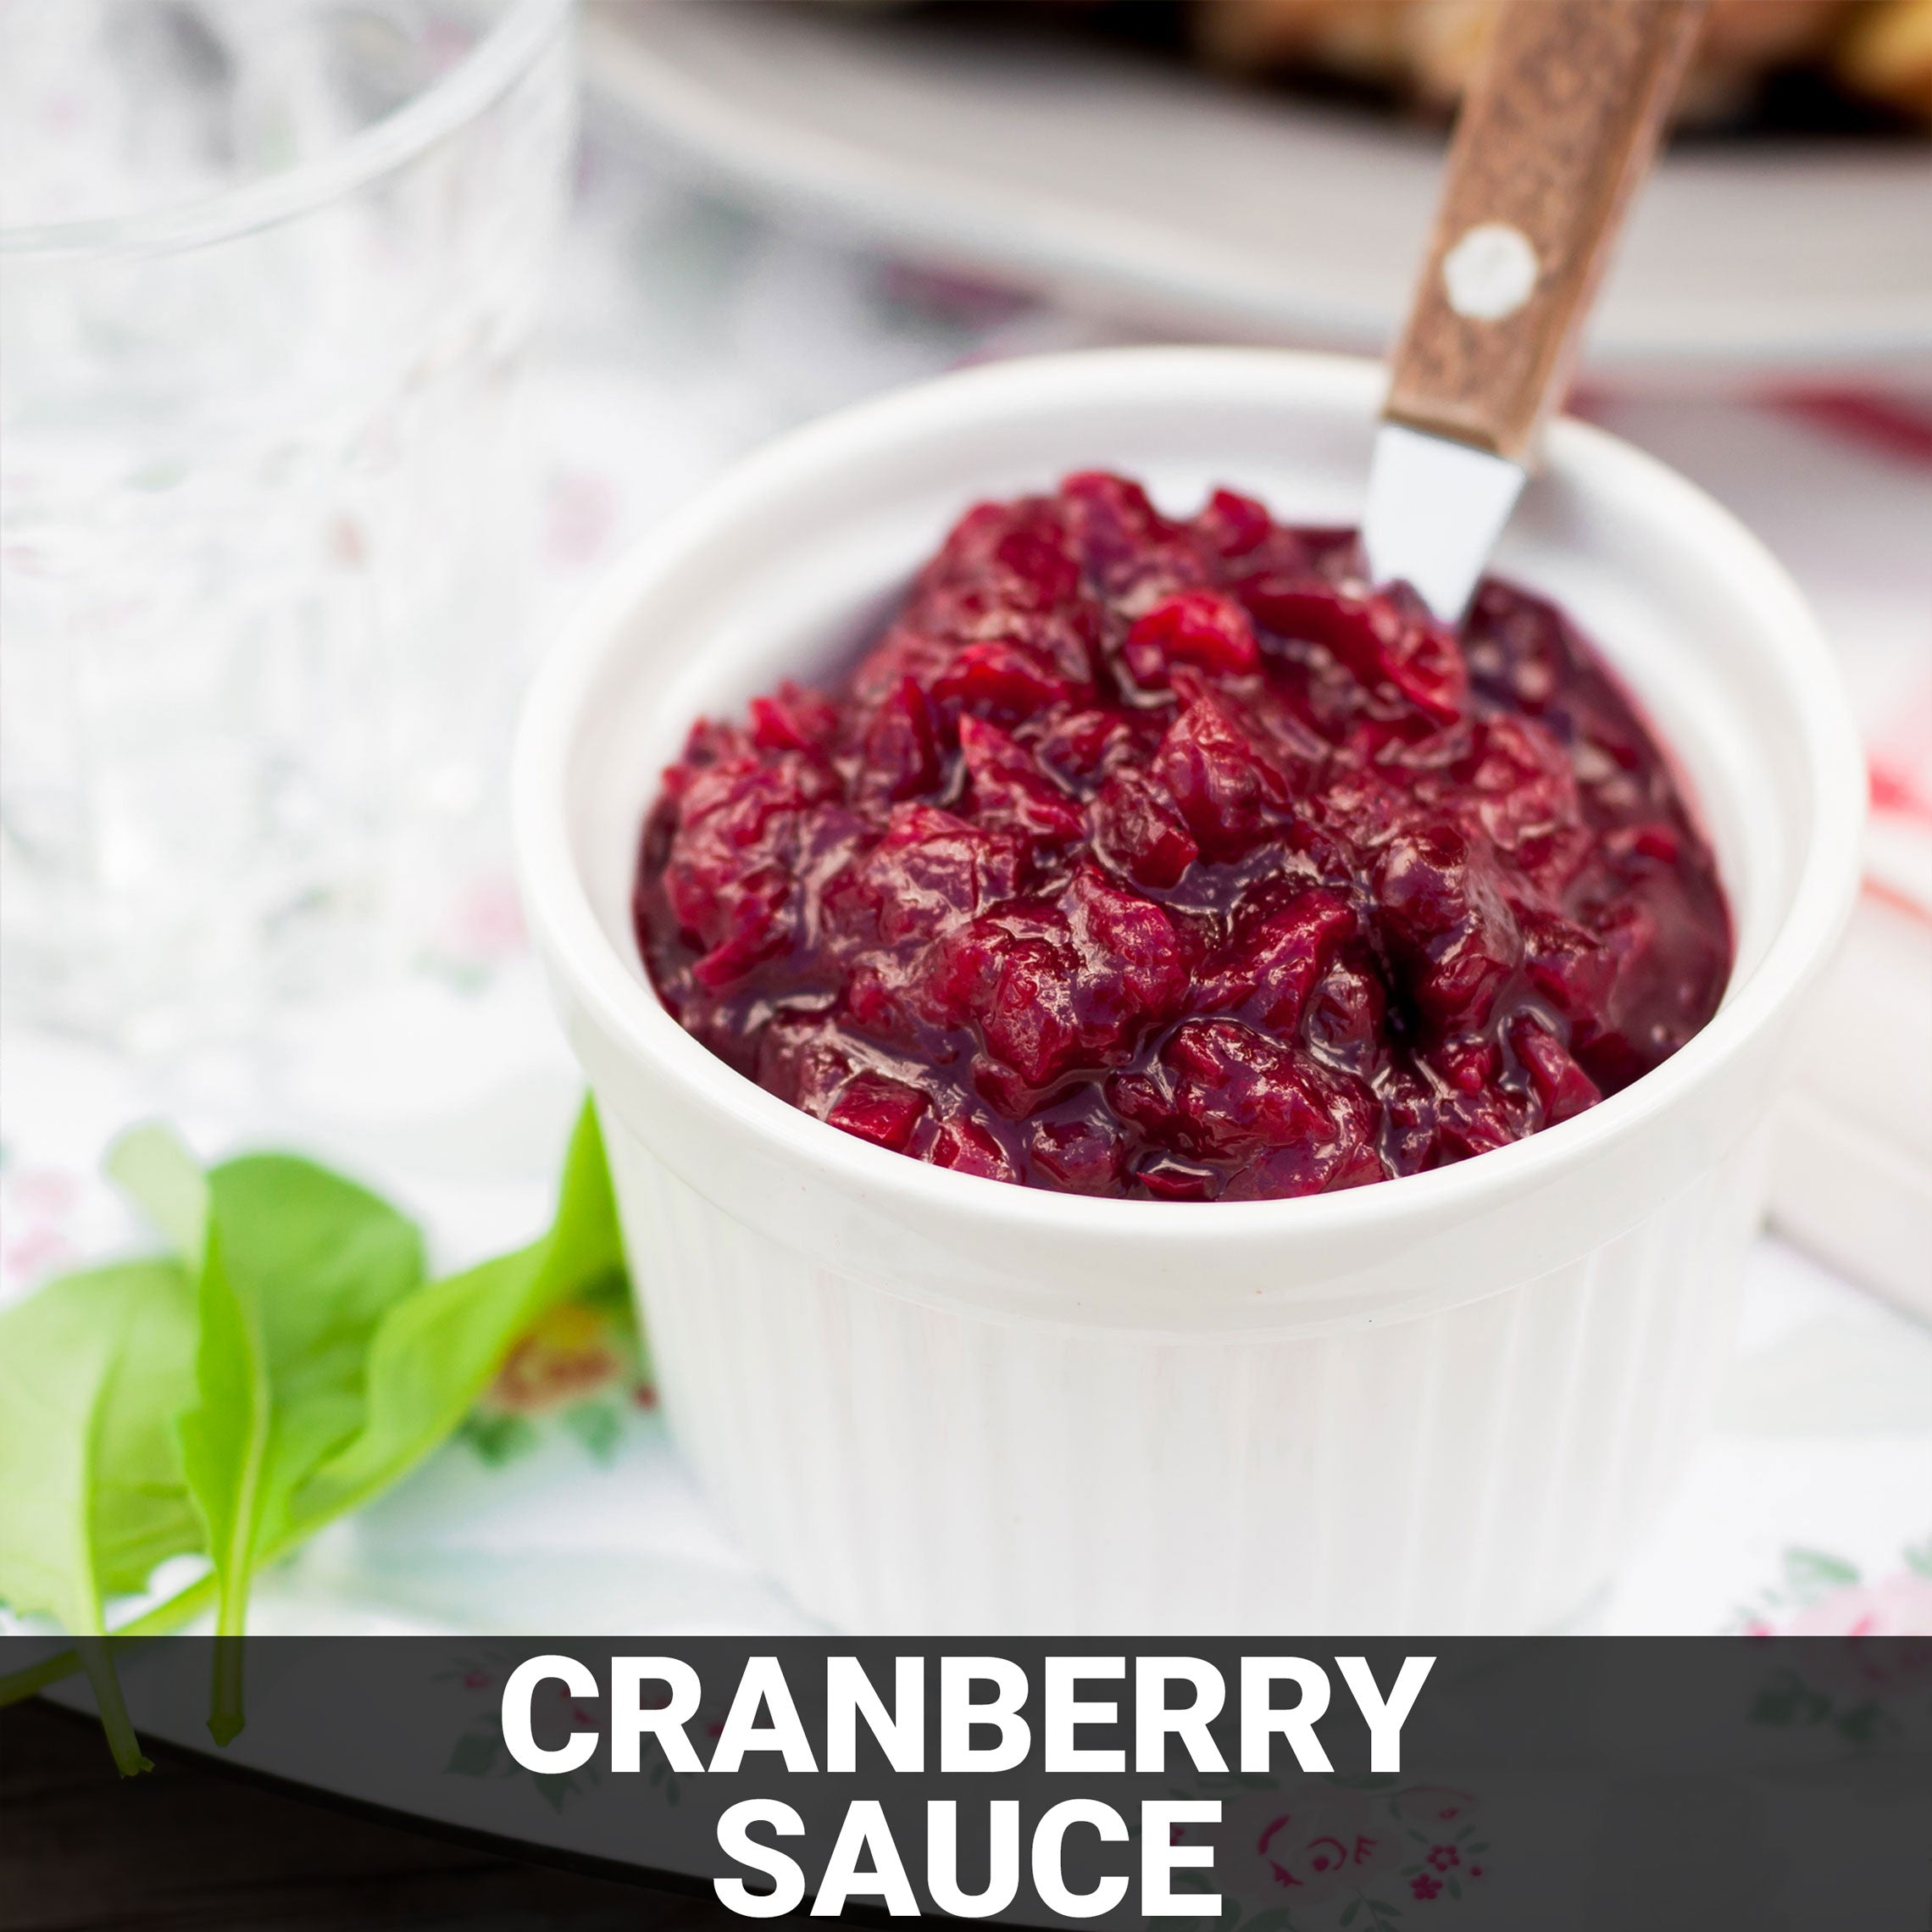 Cranberry Sauce Recipe - Foods Alive